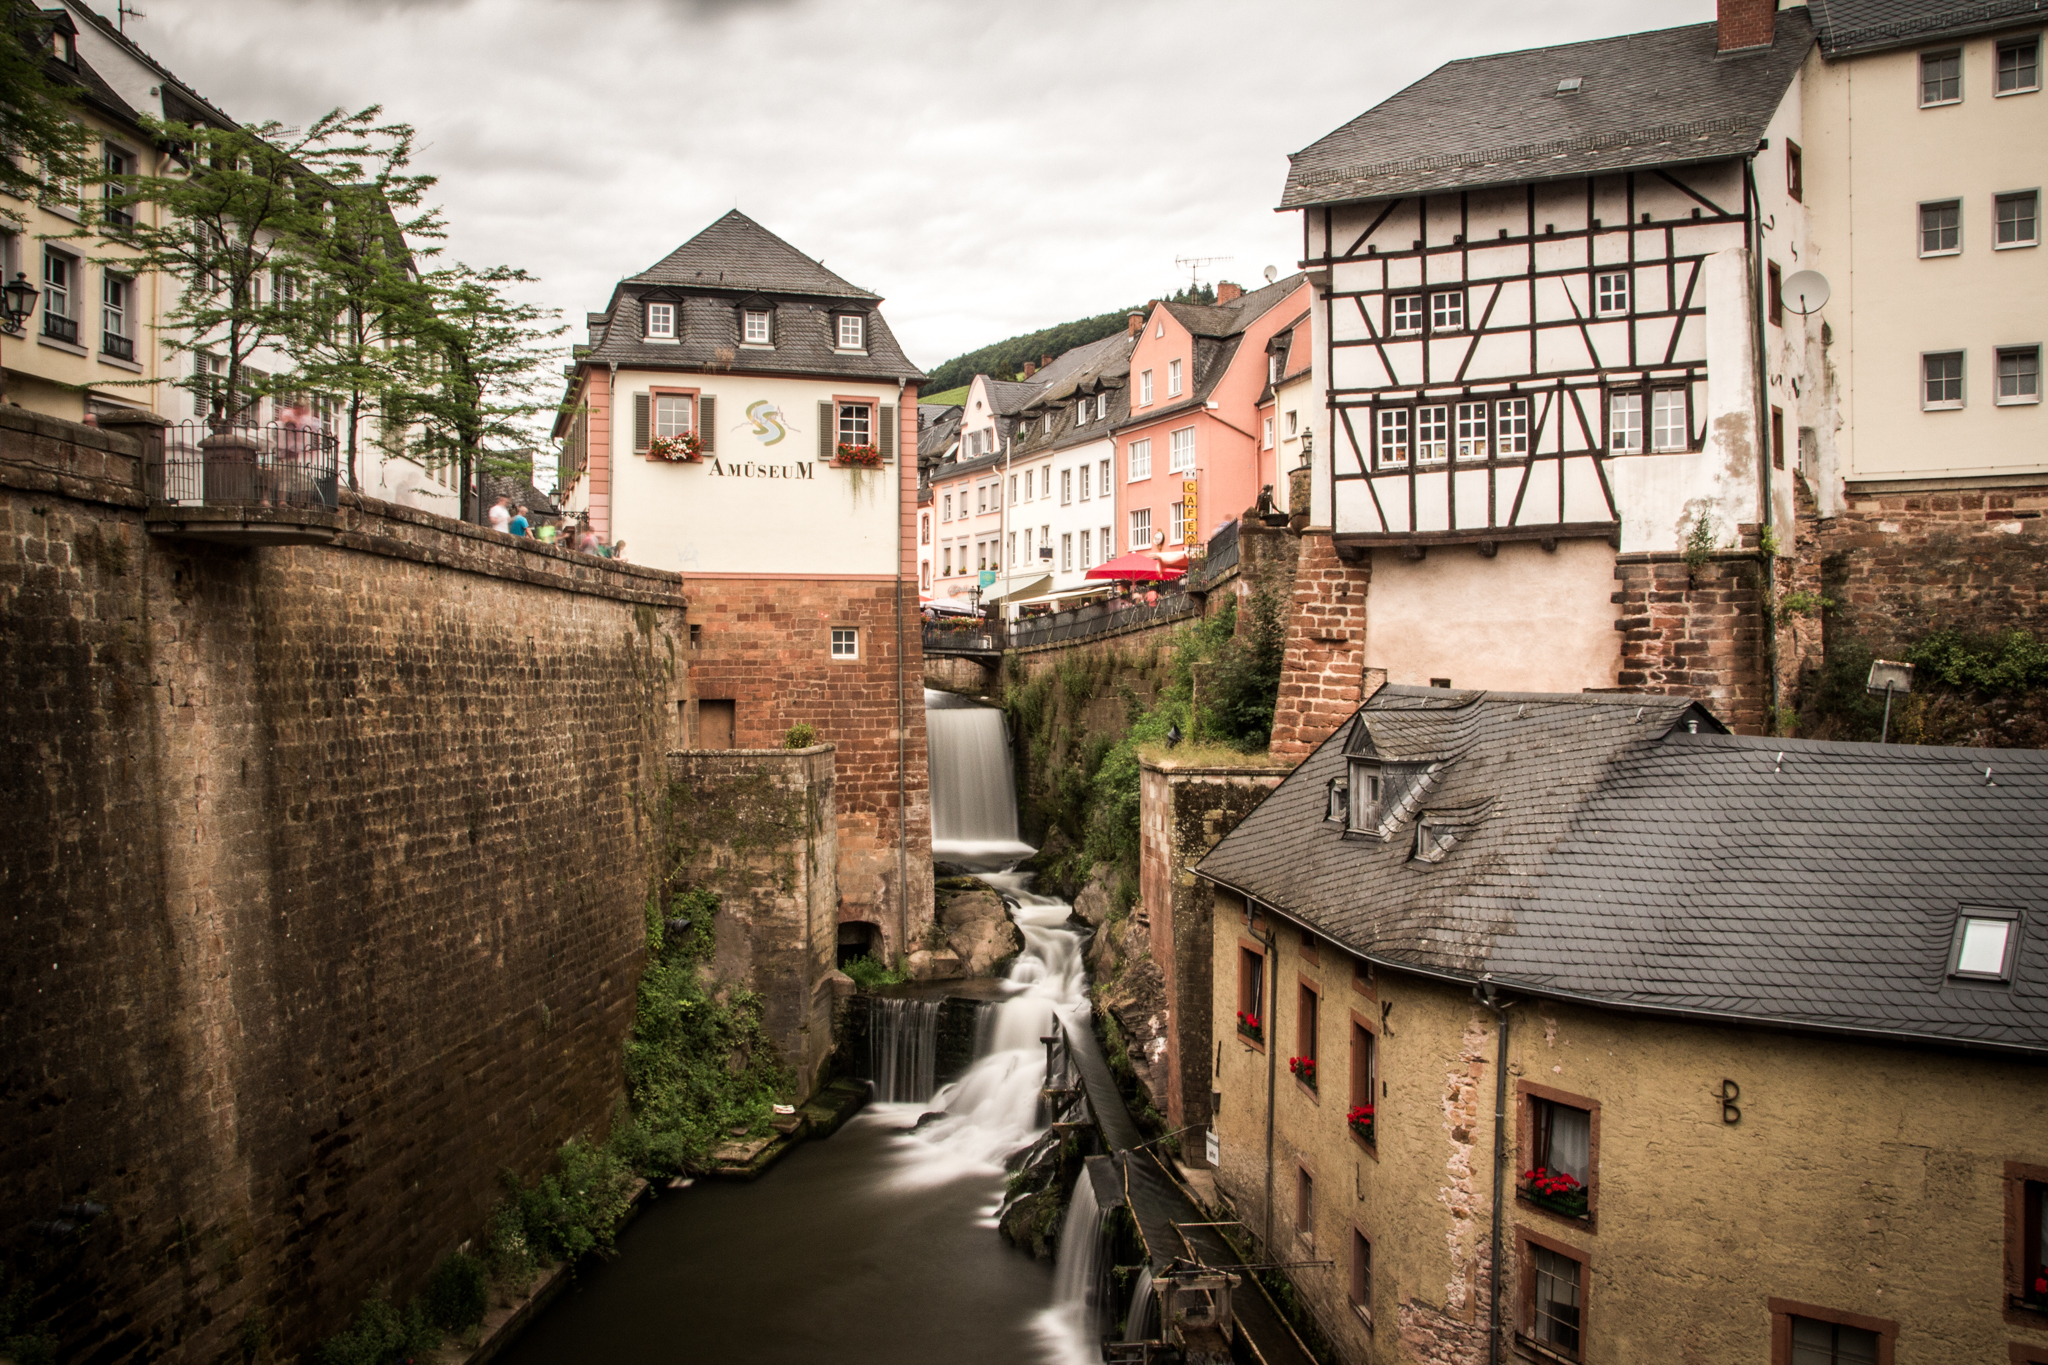 Old mill & waterfall, Germany